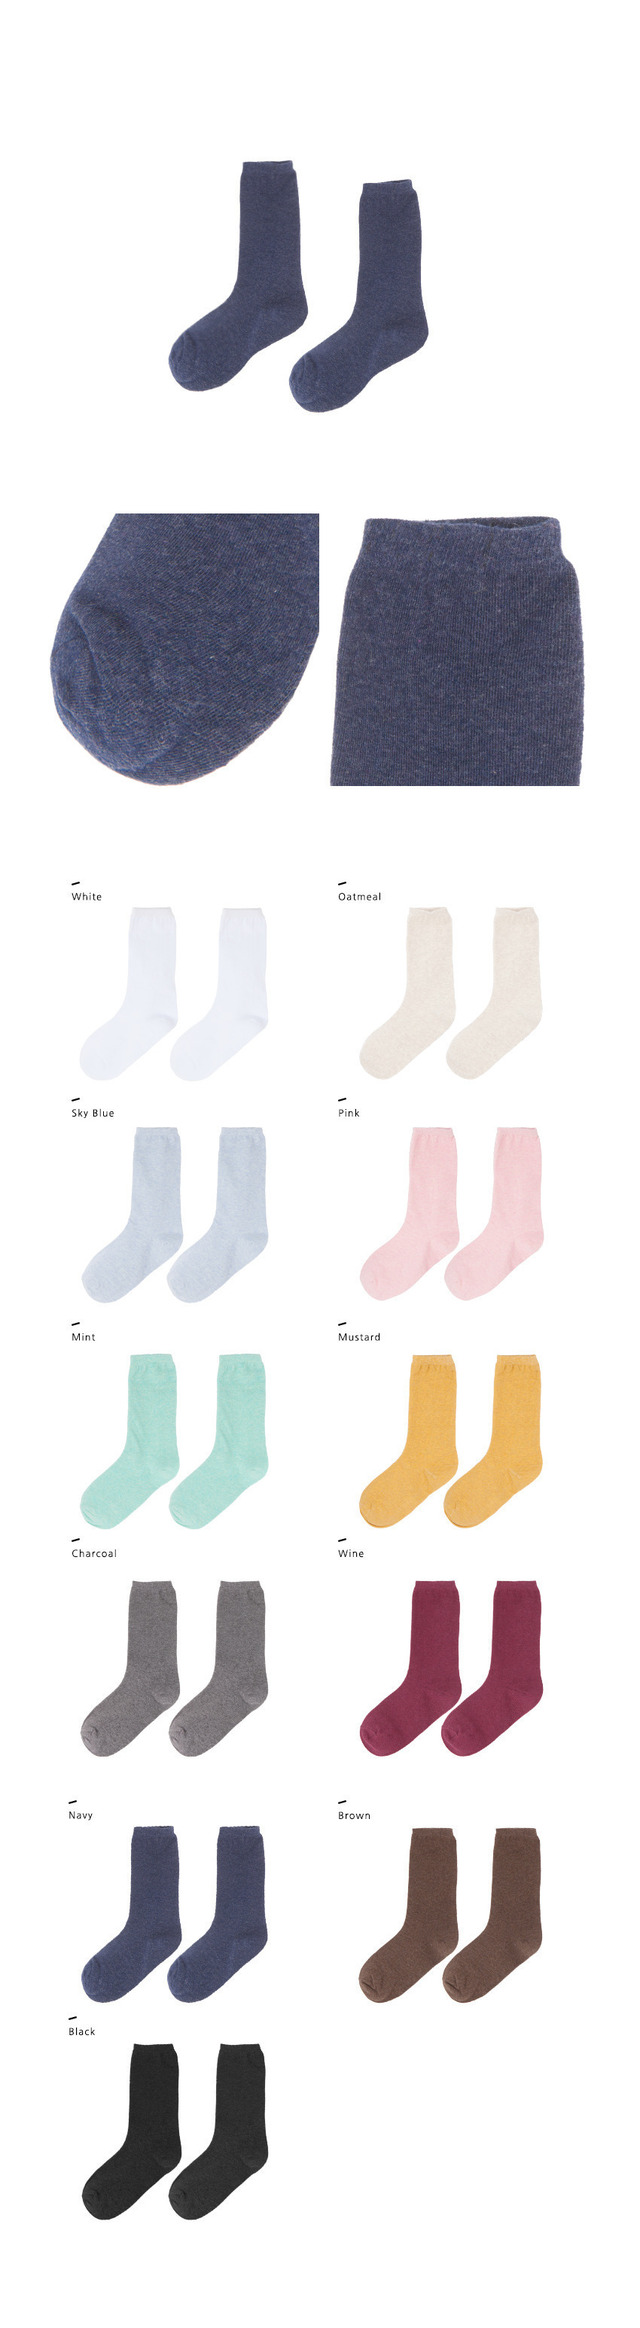 Sure Basic Socks